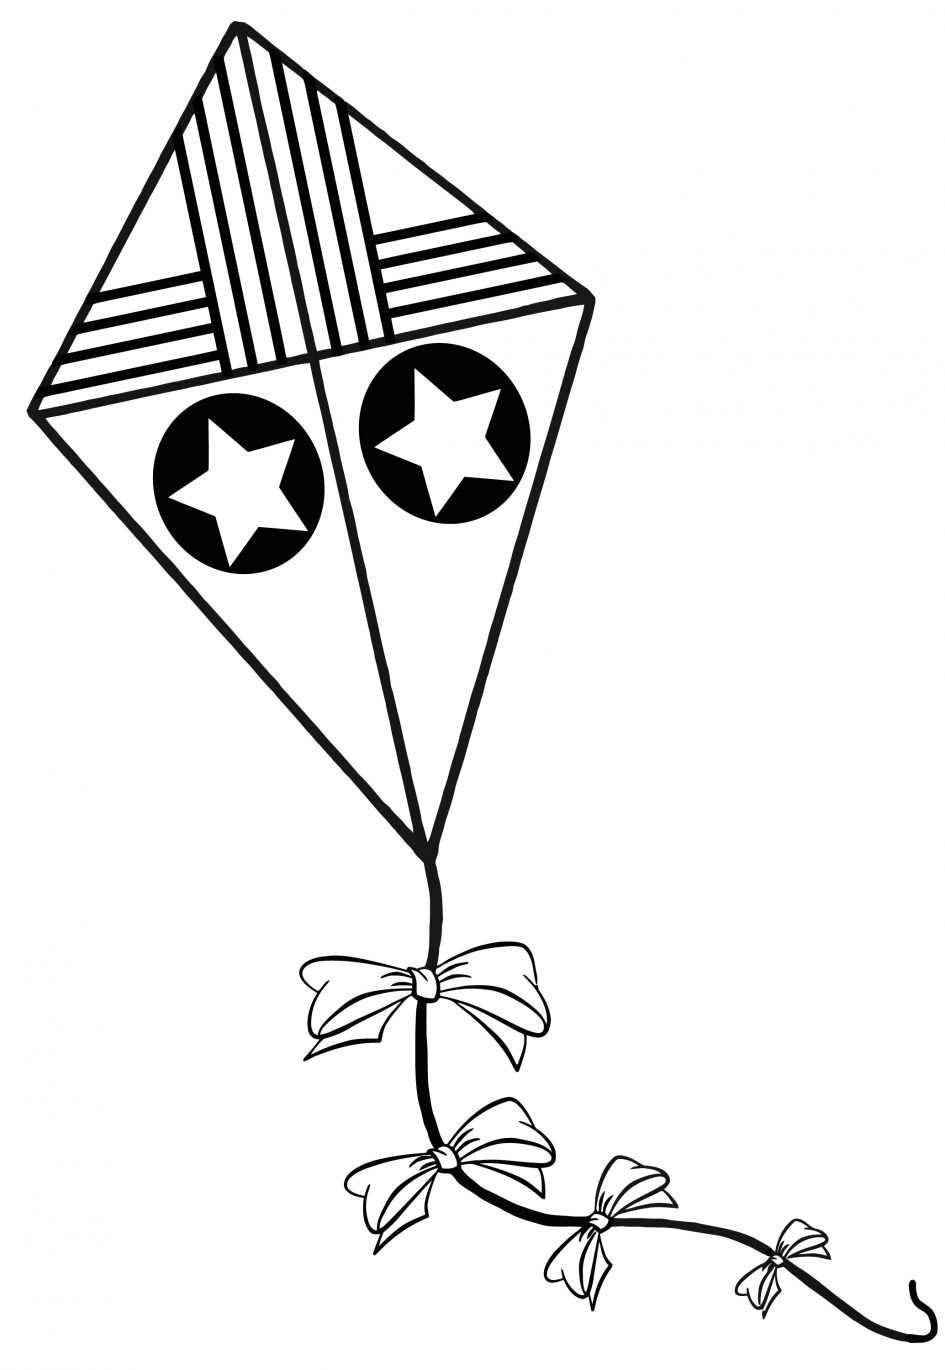 945x1370 Download Coloring Pages Kite Coloring Page Simple Kite Coloring